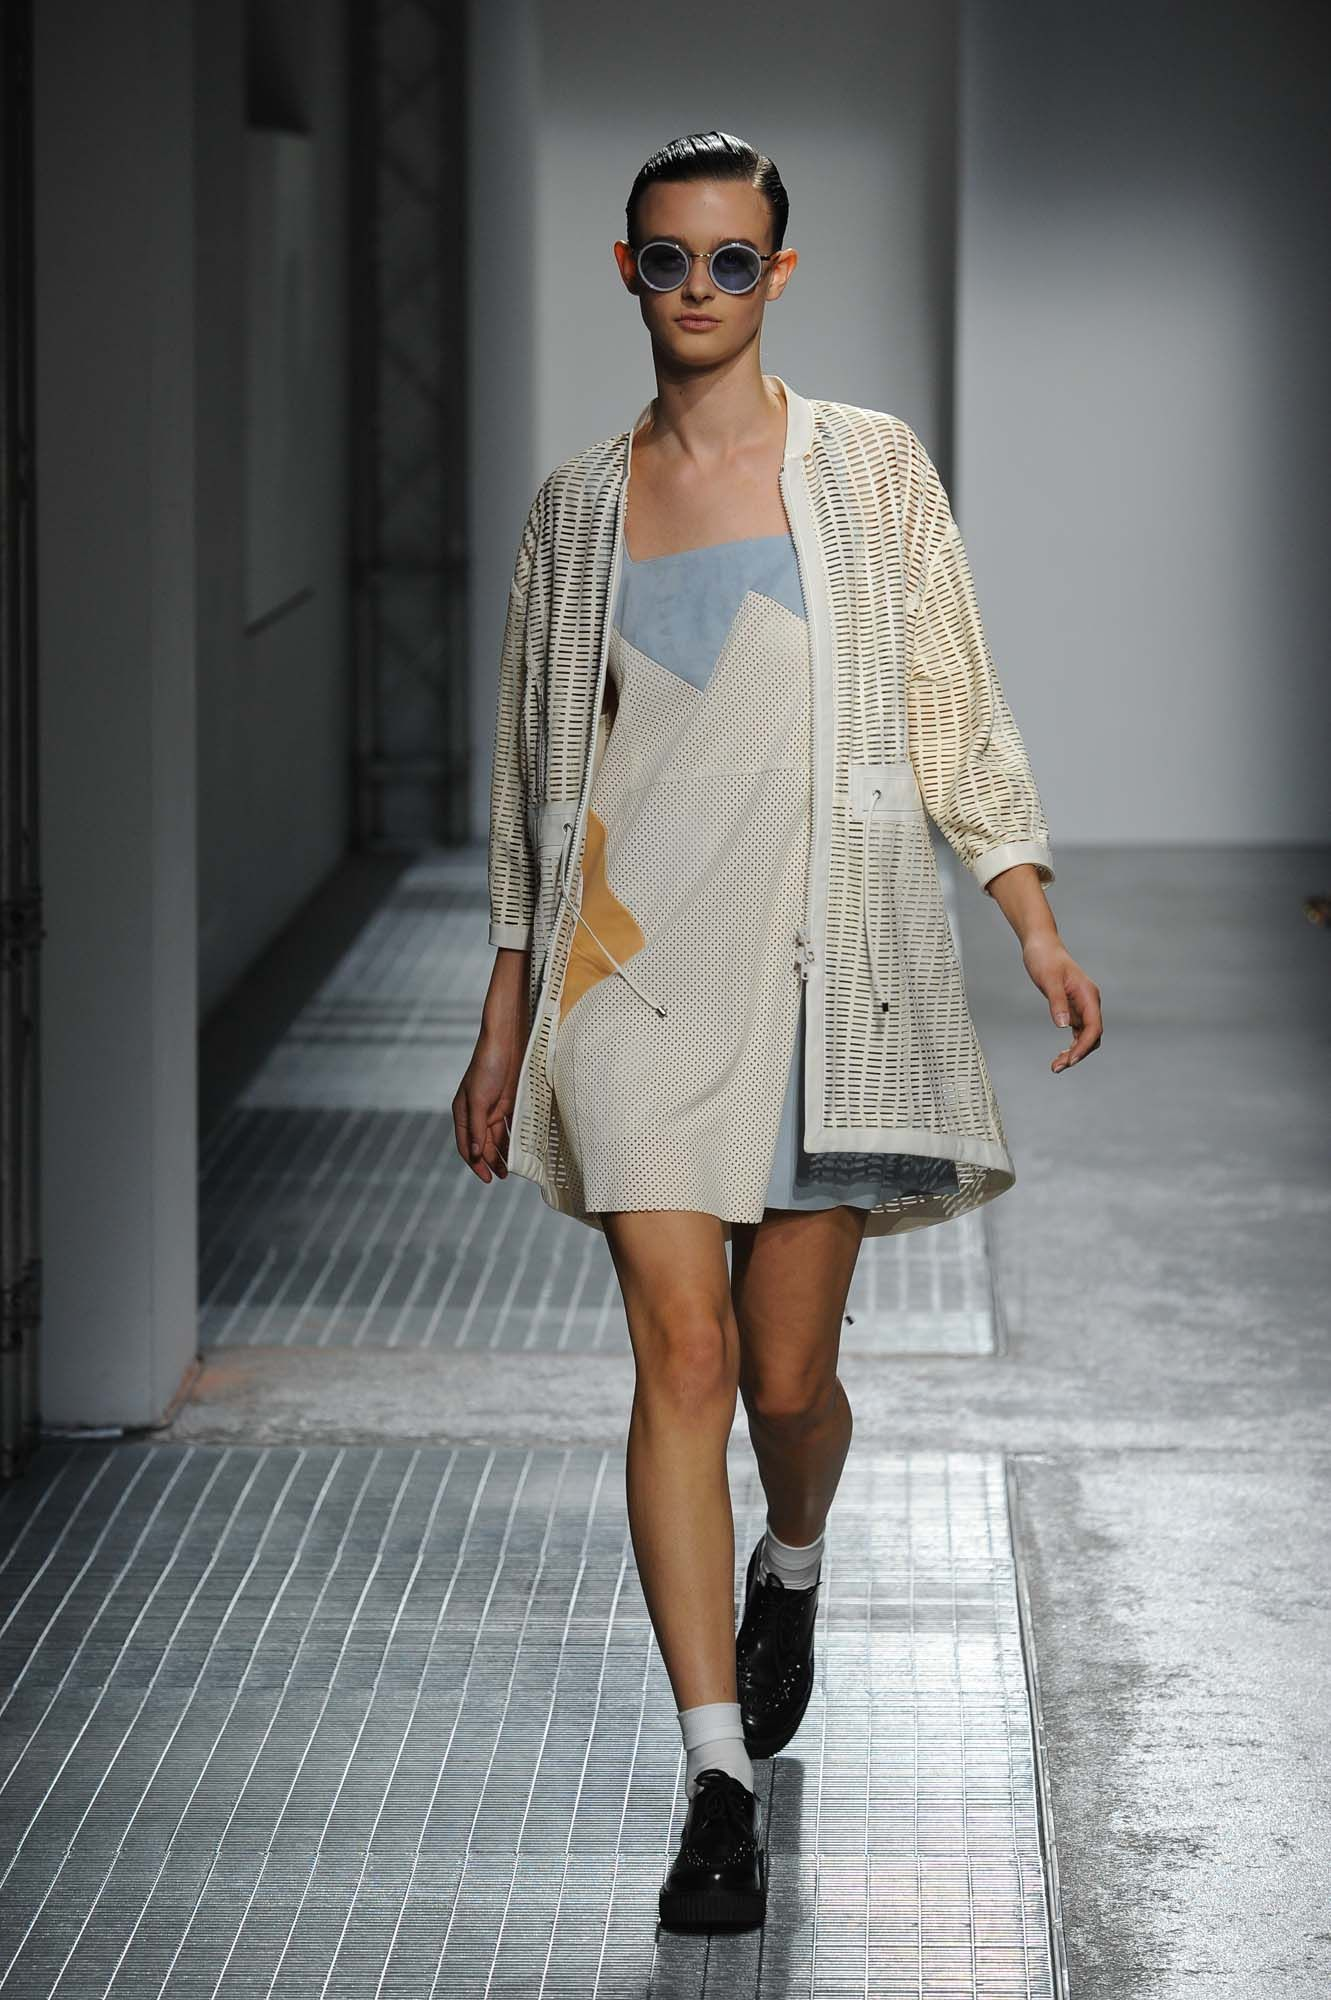 DROMe Woman Spring Summer 2015